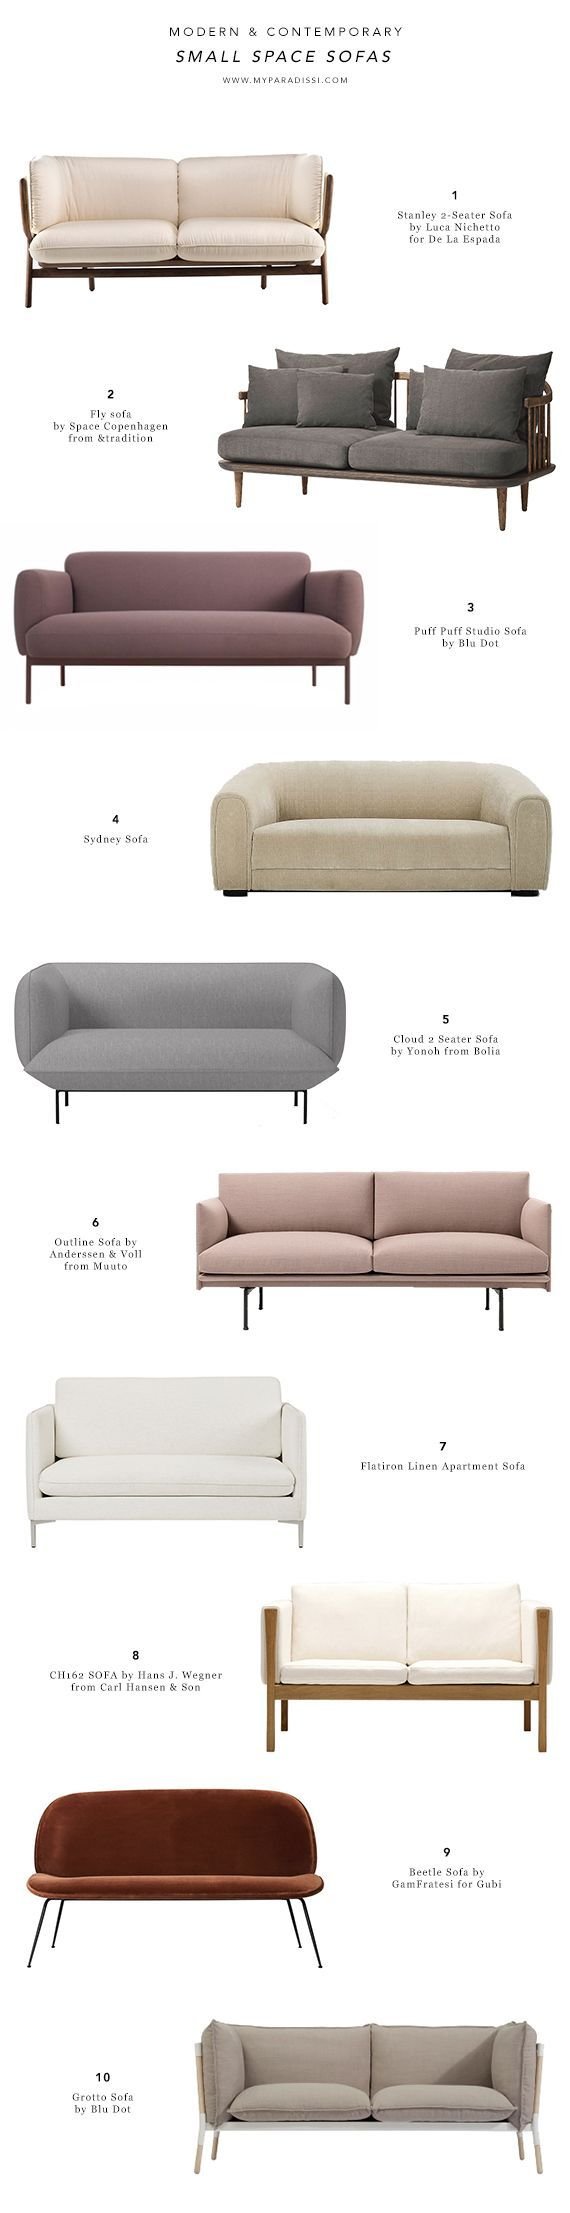 Small space sofas, compact sofas, settees, contemporary loveseats ...